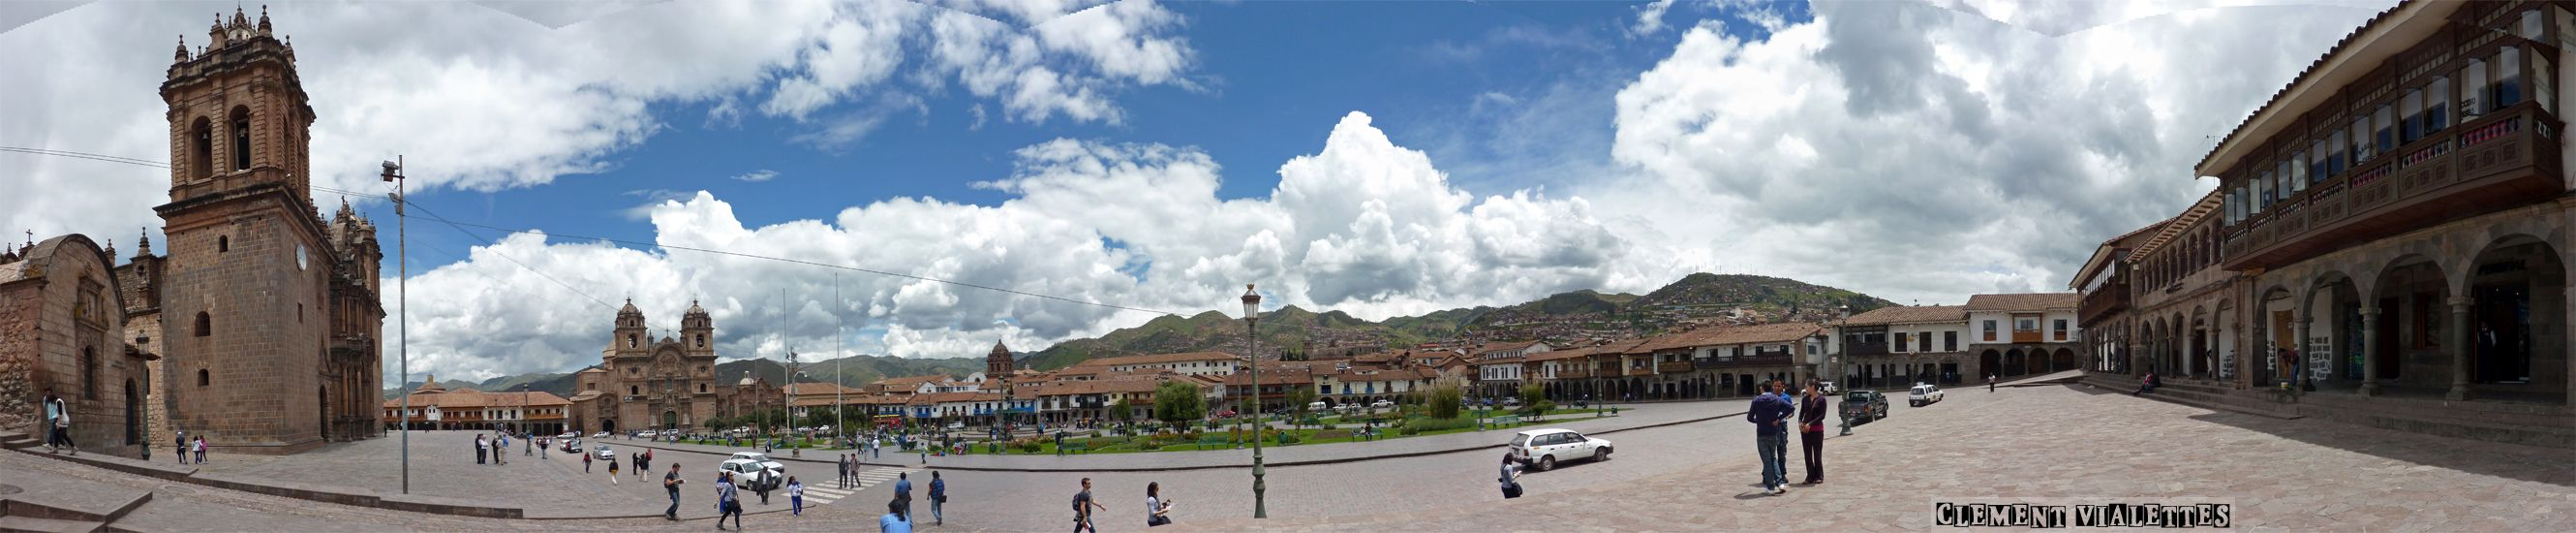 pérou Cusco panoramique